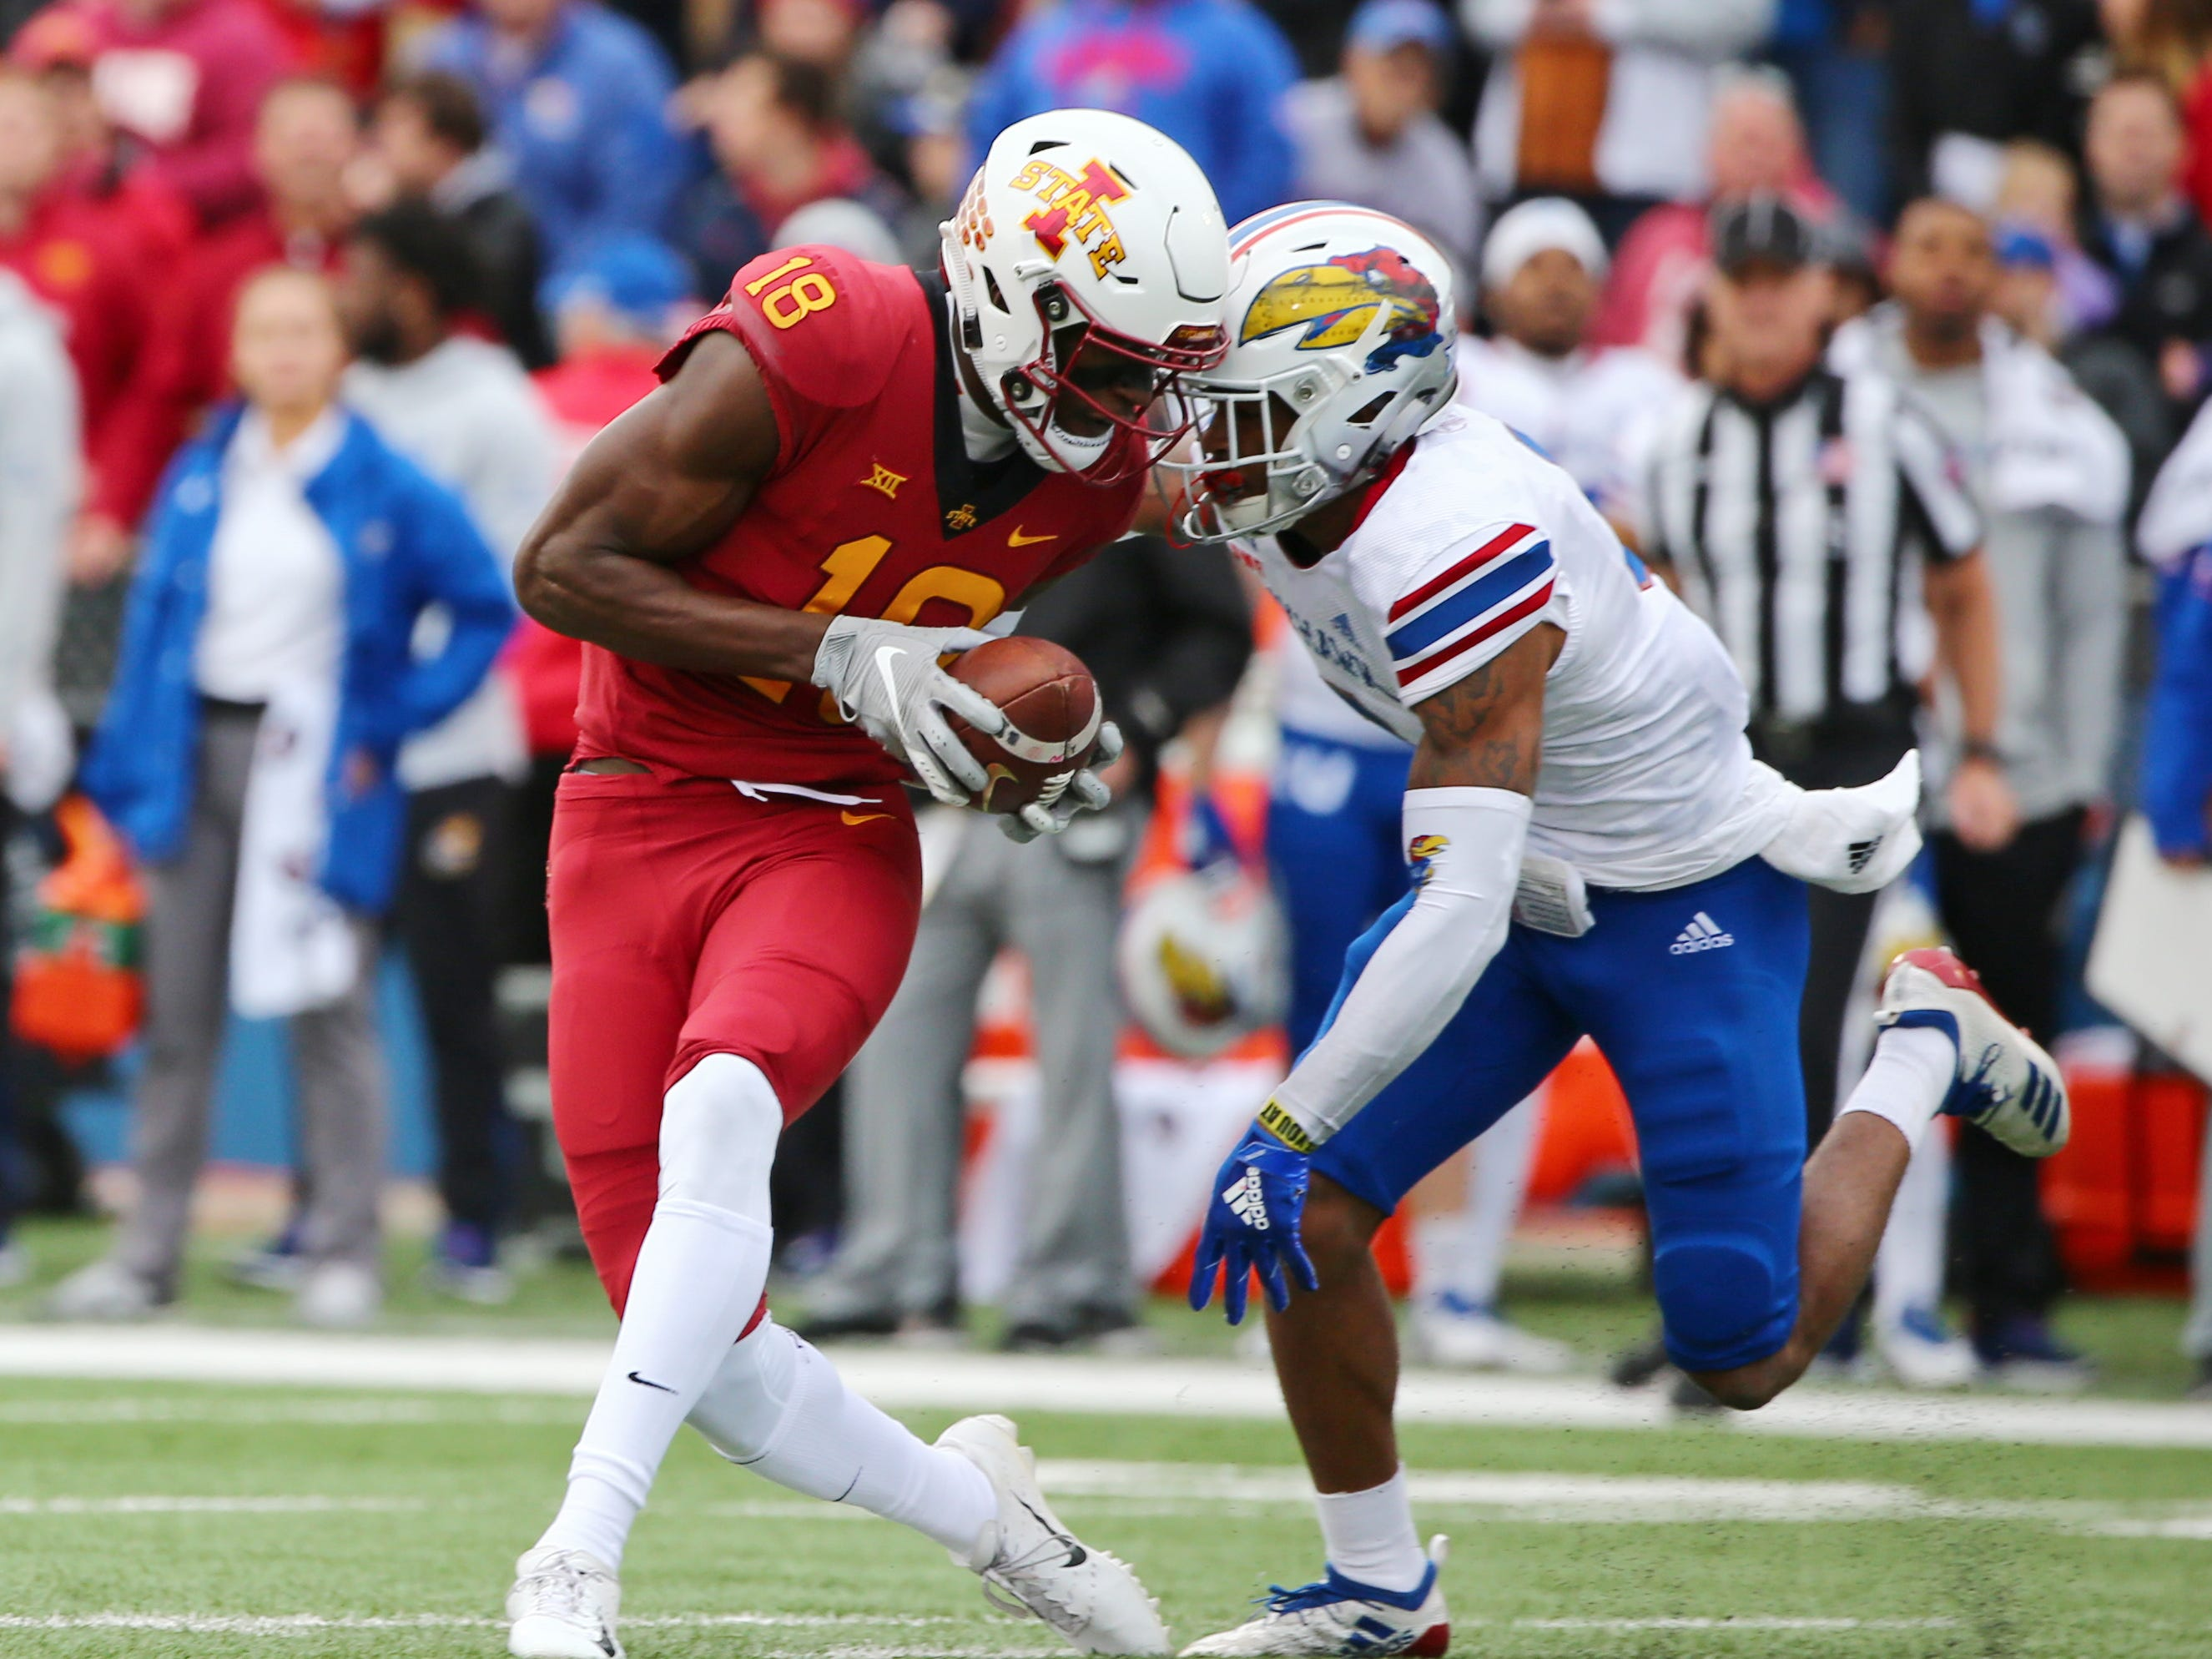 Iowa State Cyclones wide receiver Hakeem Butler (18) catches a pass for a touchdown against Kansas Jayhawks wide receiver Evan Fairs in the first half at Memorial Stadium.